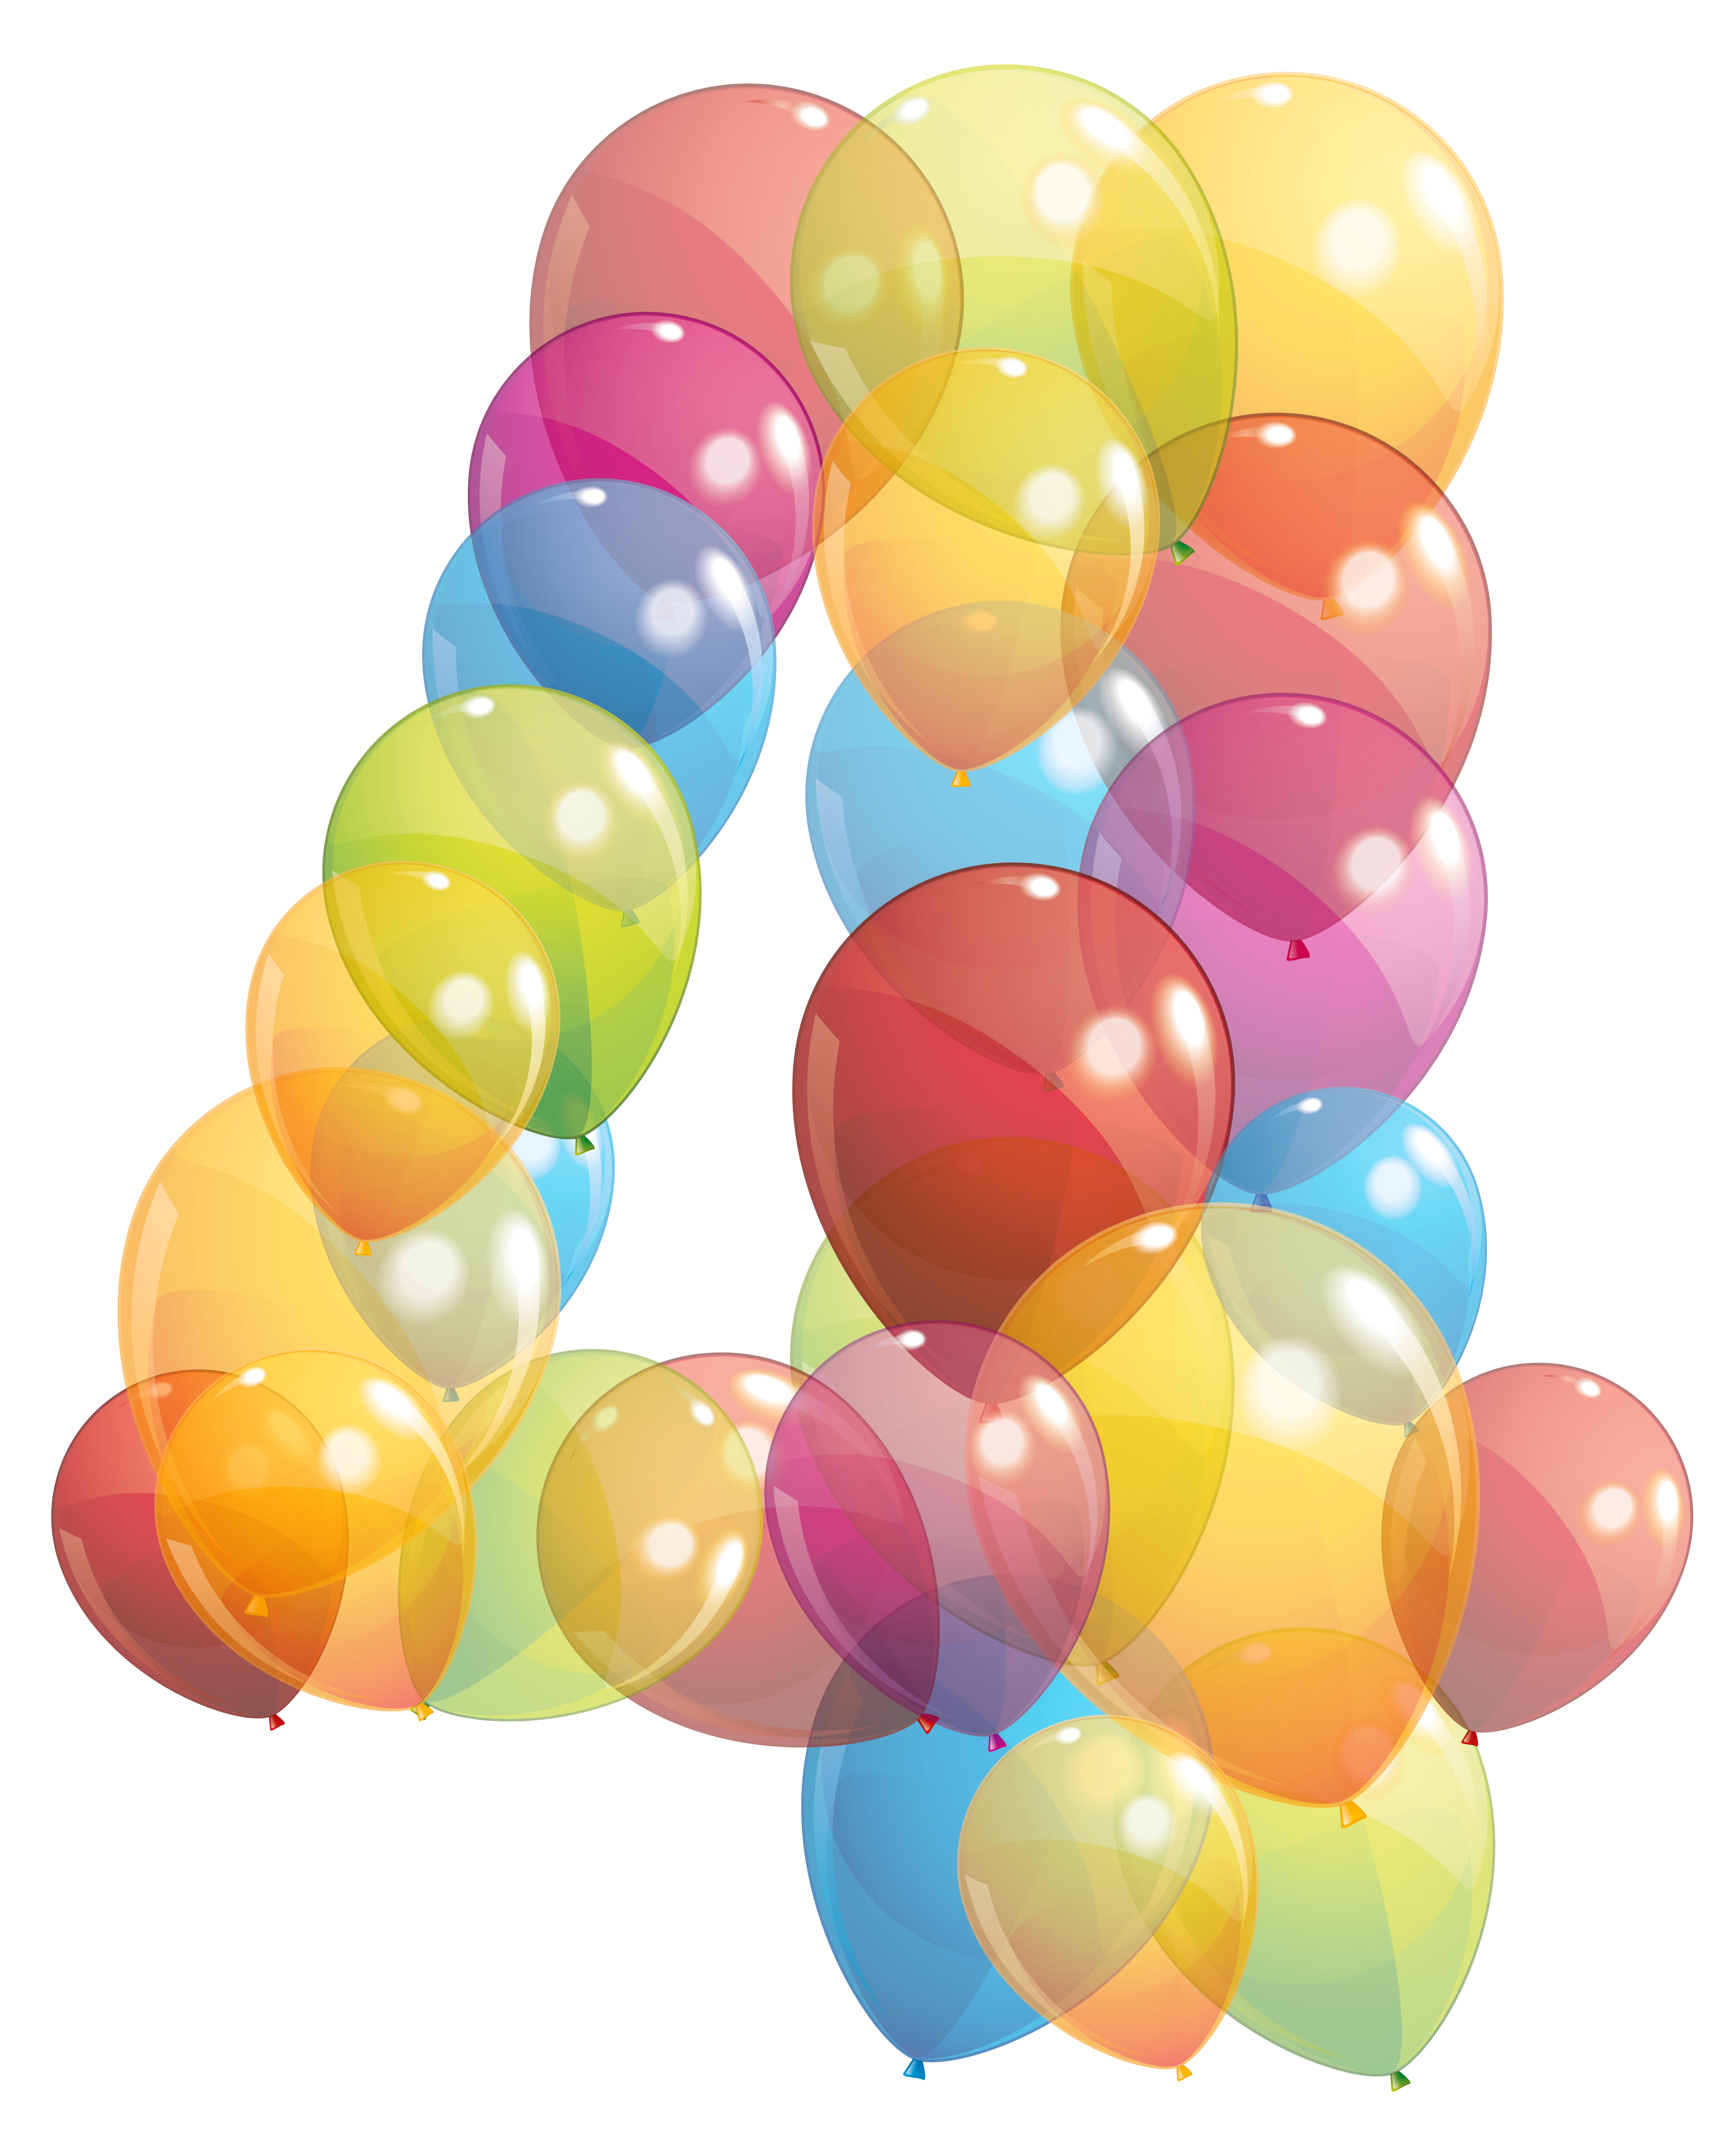 Four clipart birthday baloon. Transparent number of balloons